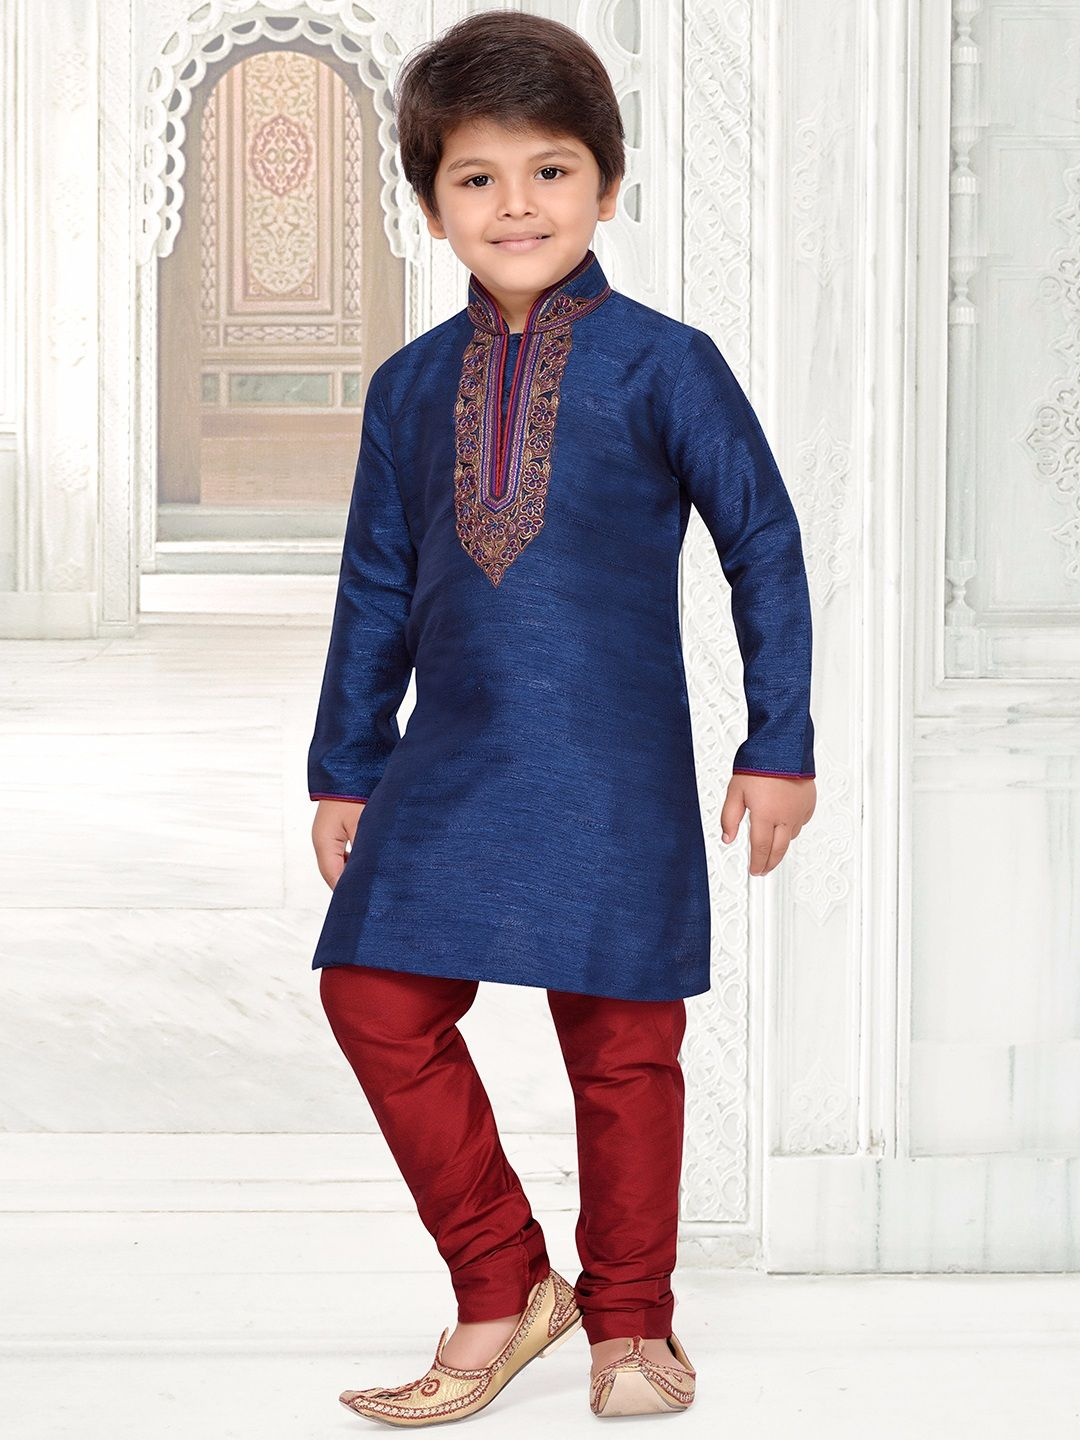 acaf2b4e84 Blue Raw Silk Boys Kurta Suit. Find this Pin and more on Boys Indian Fashion  ...